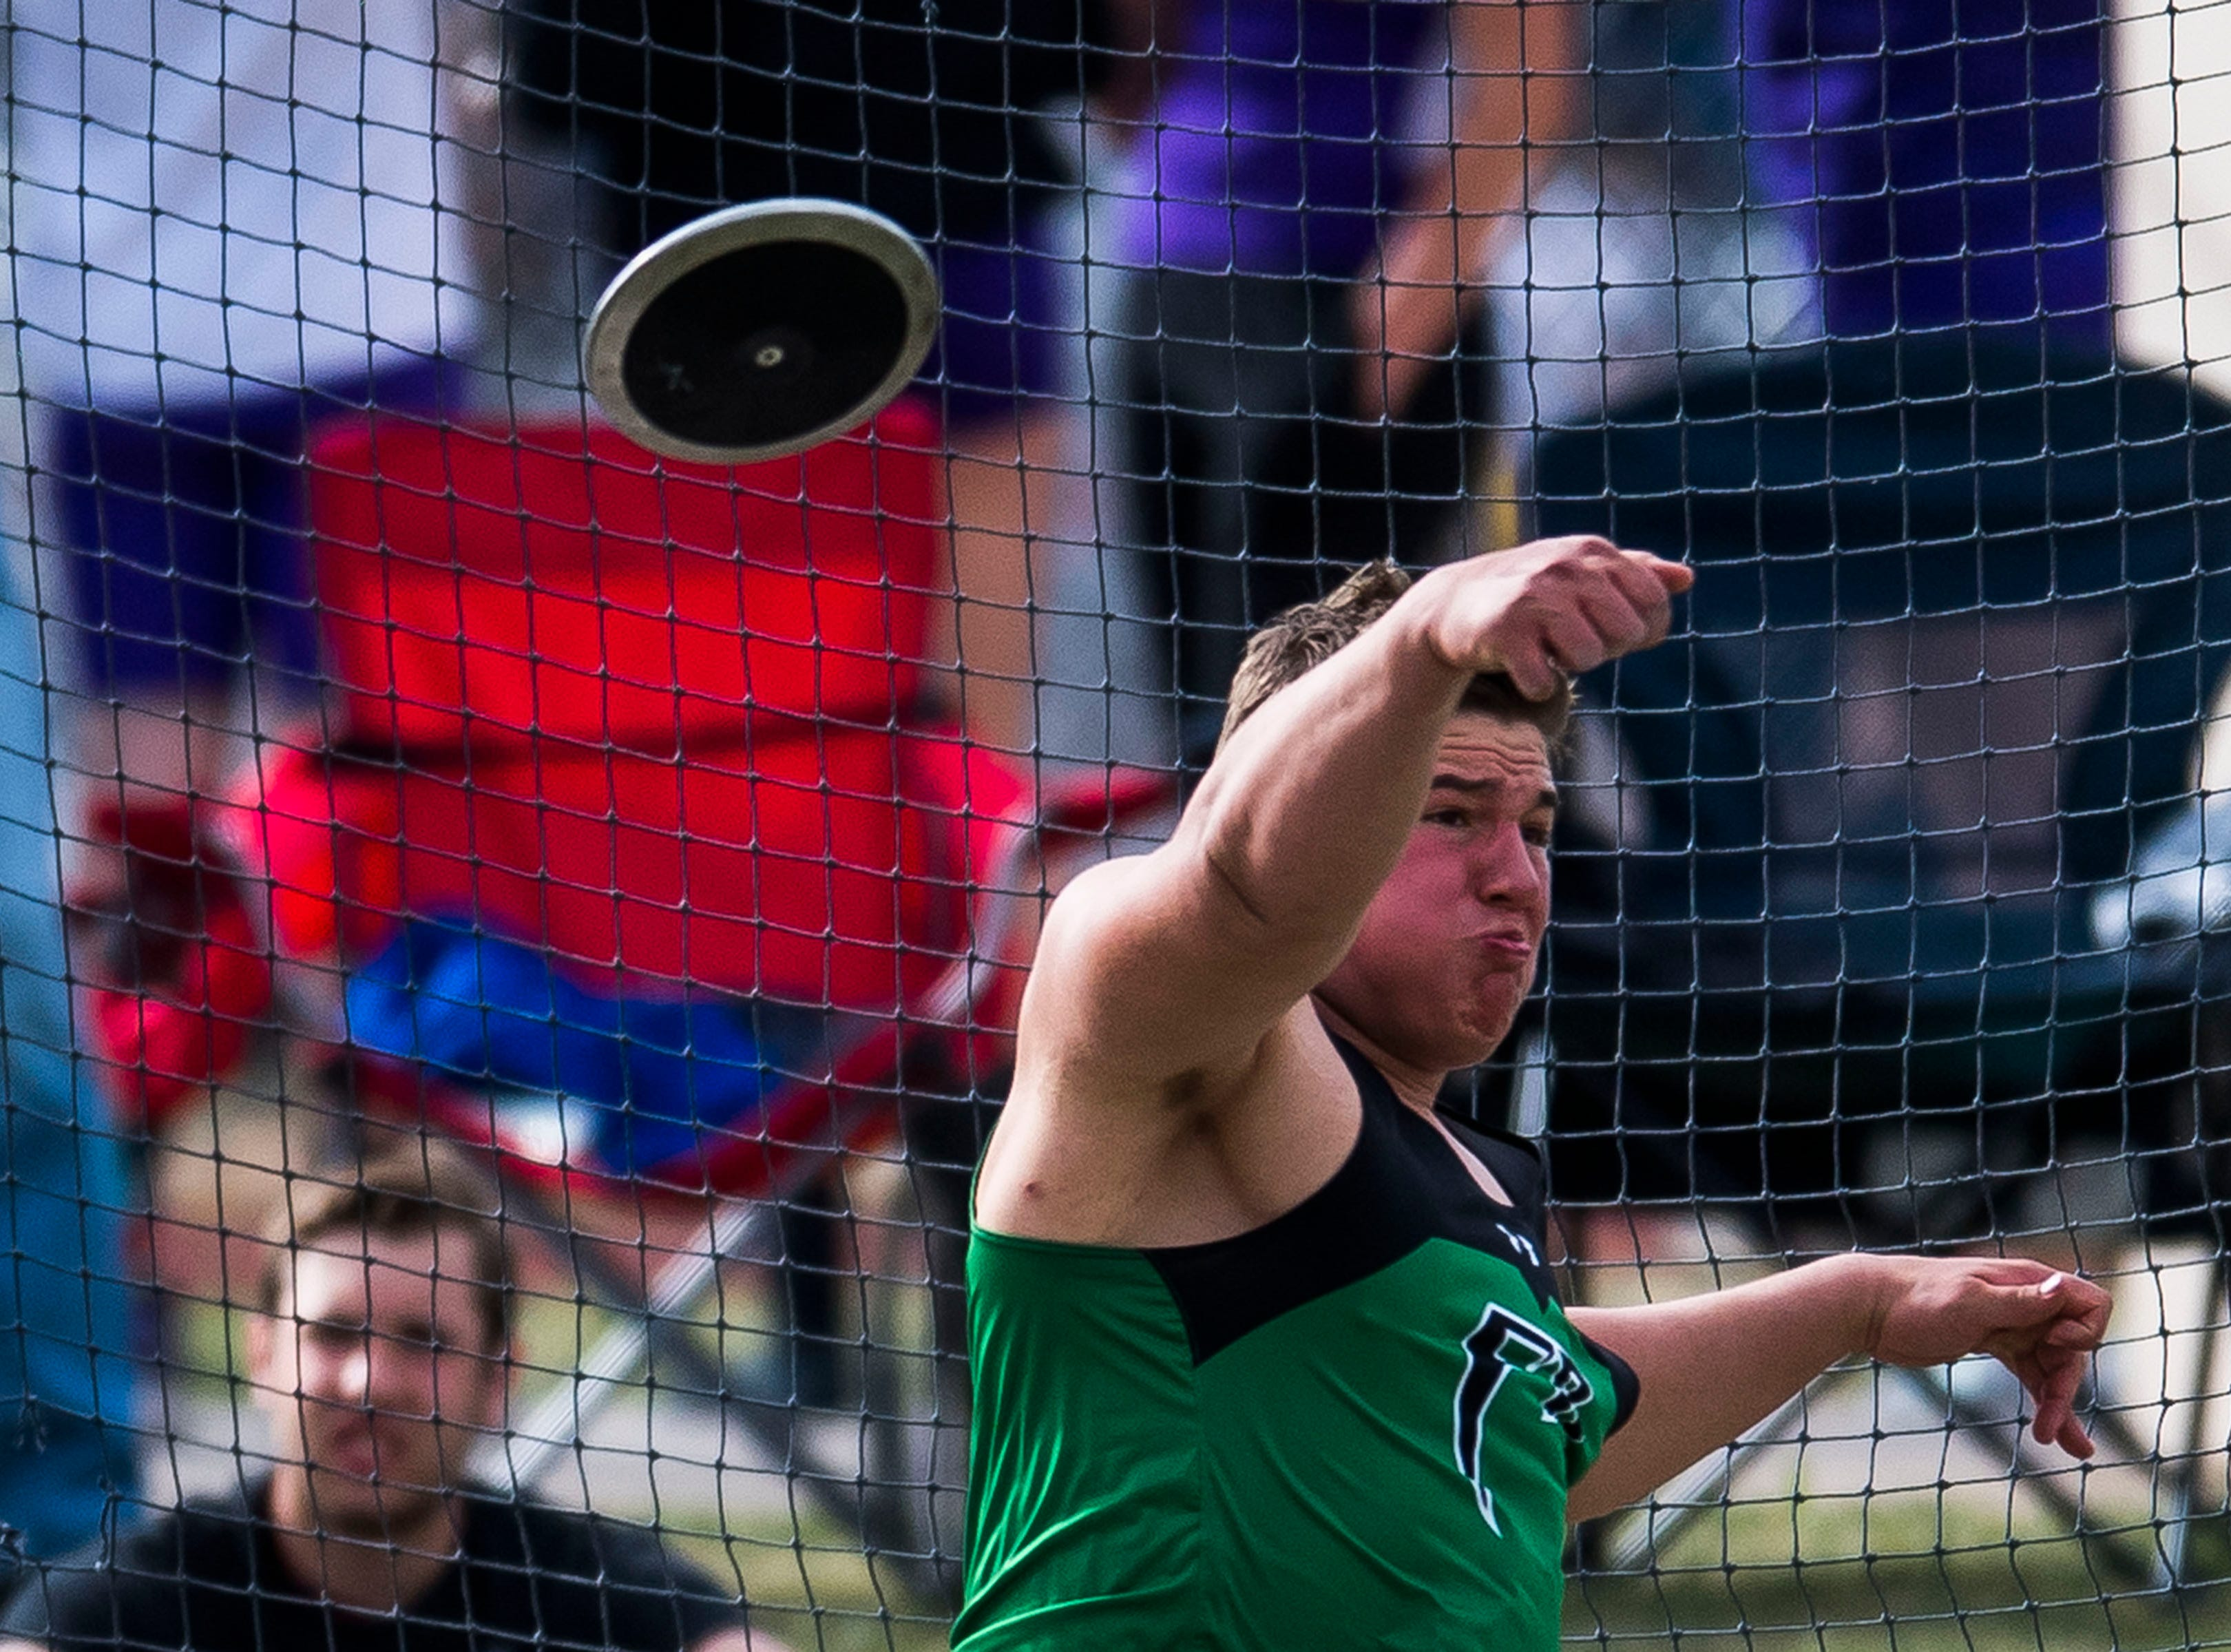 Fossil Ridge's Zach Heckman competes I the discus during the Randy Yaussi City Track Championships on Tuesday, April 9, 2019, at French Field in Fort Collins, Colo.